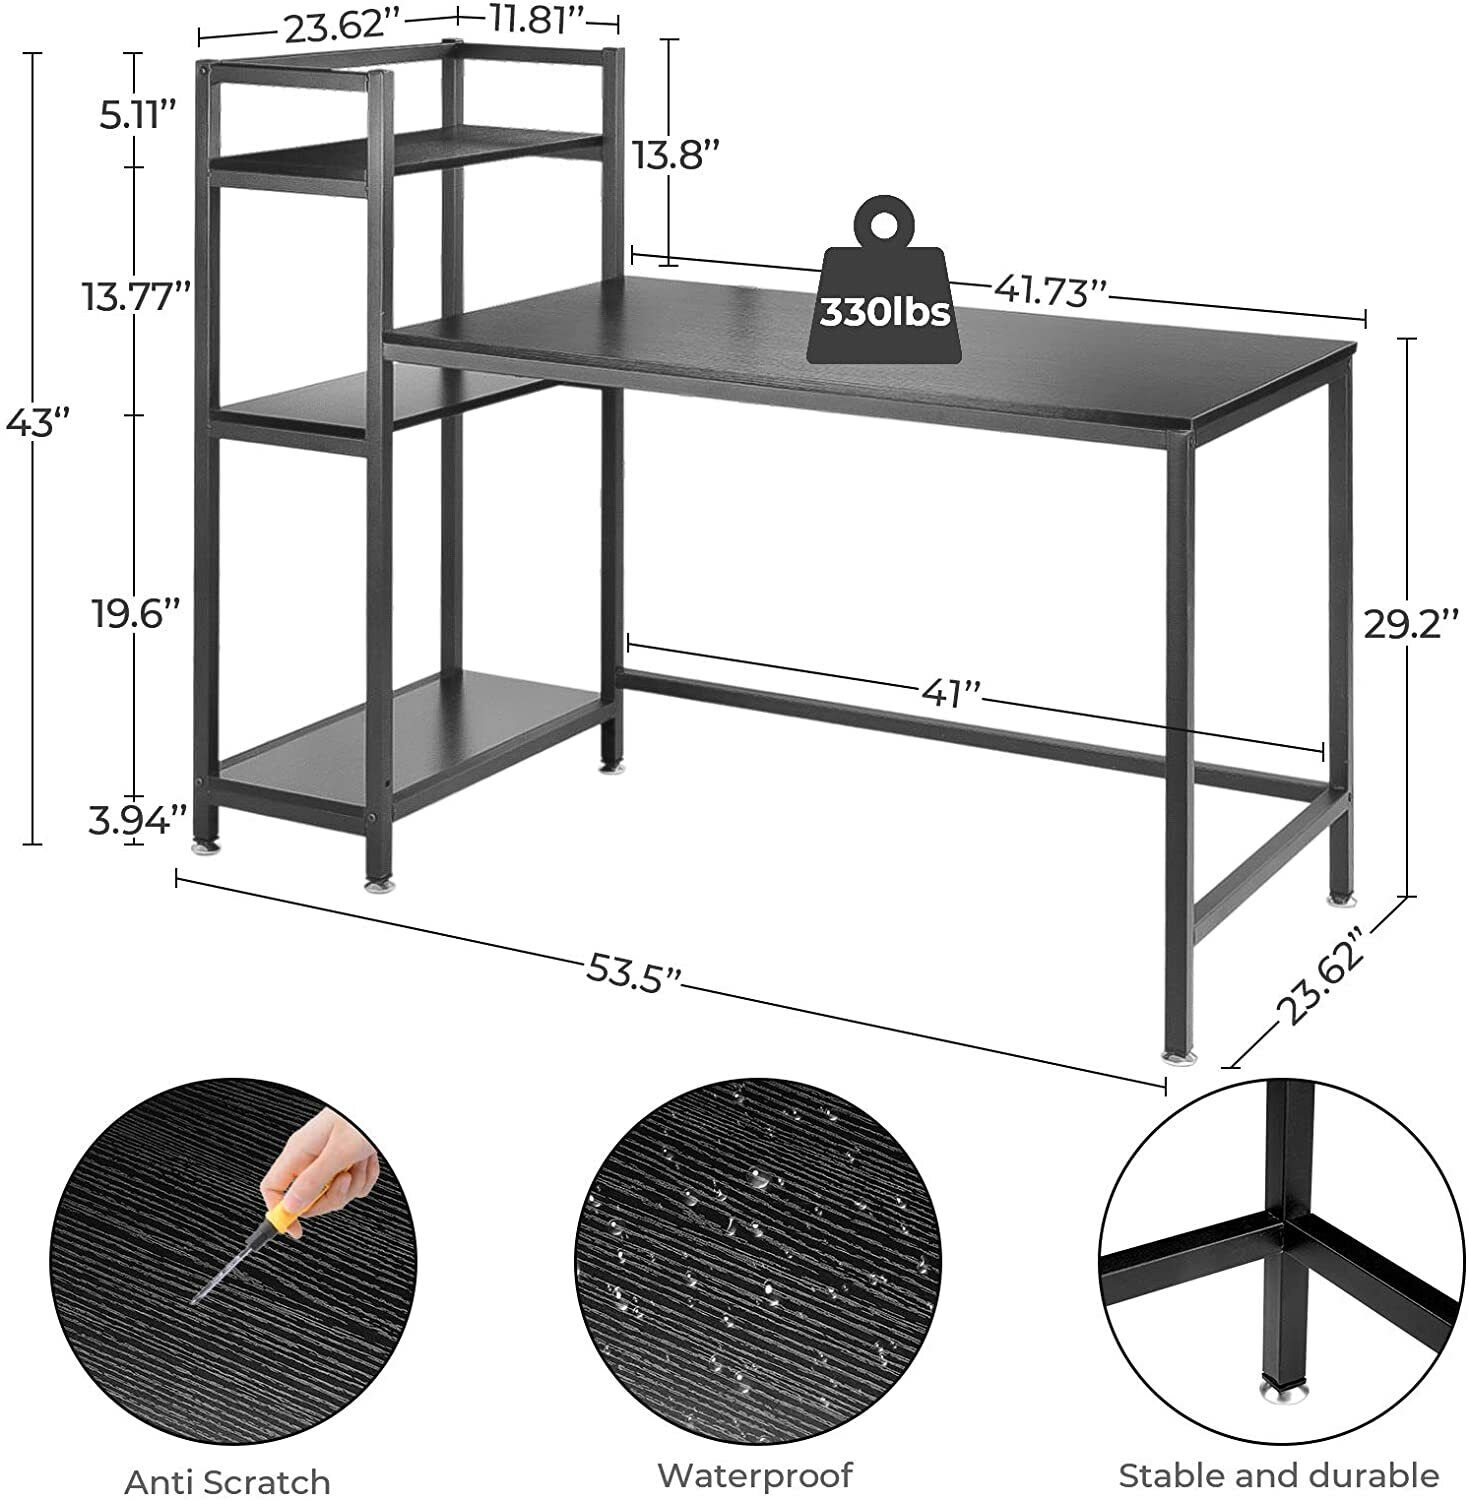 Computer Desk with 3 Tier Storage Shelf- 53.5 Inch Home Office Table, Modern Furniture